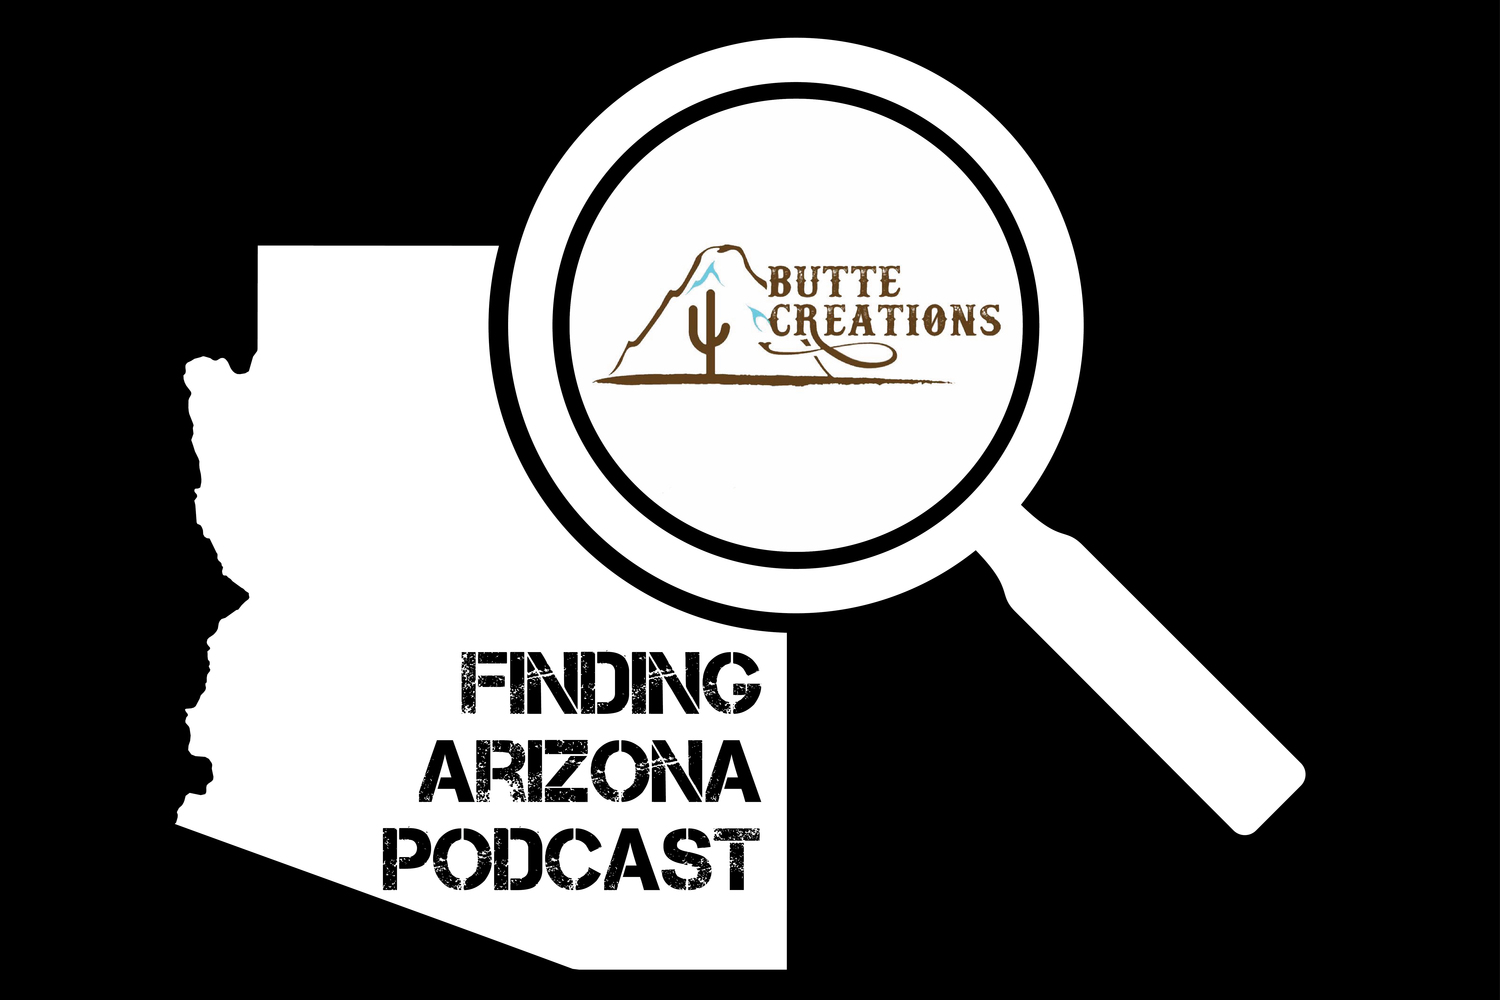 PodCastLogo-ButteCreations.jpg